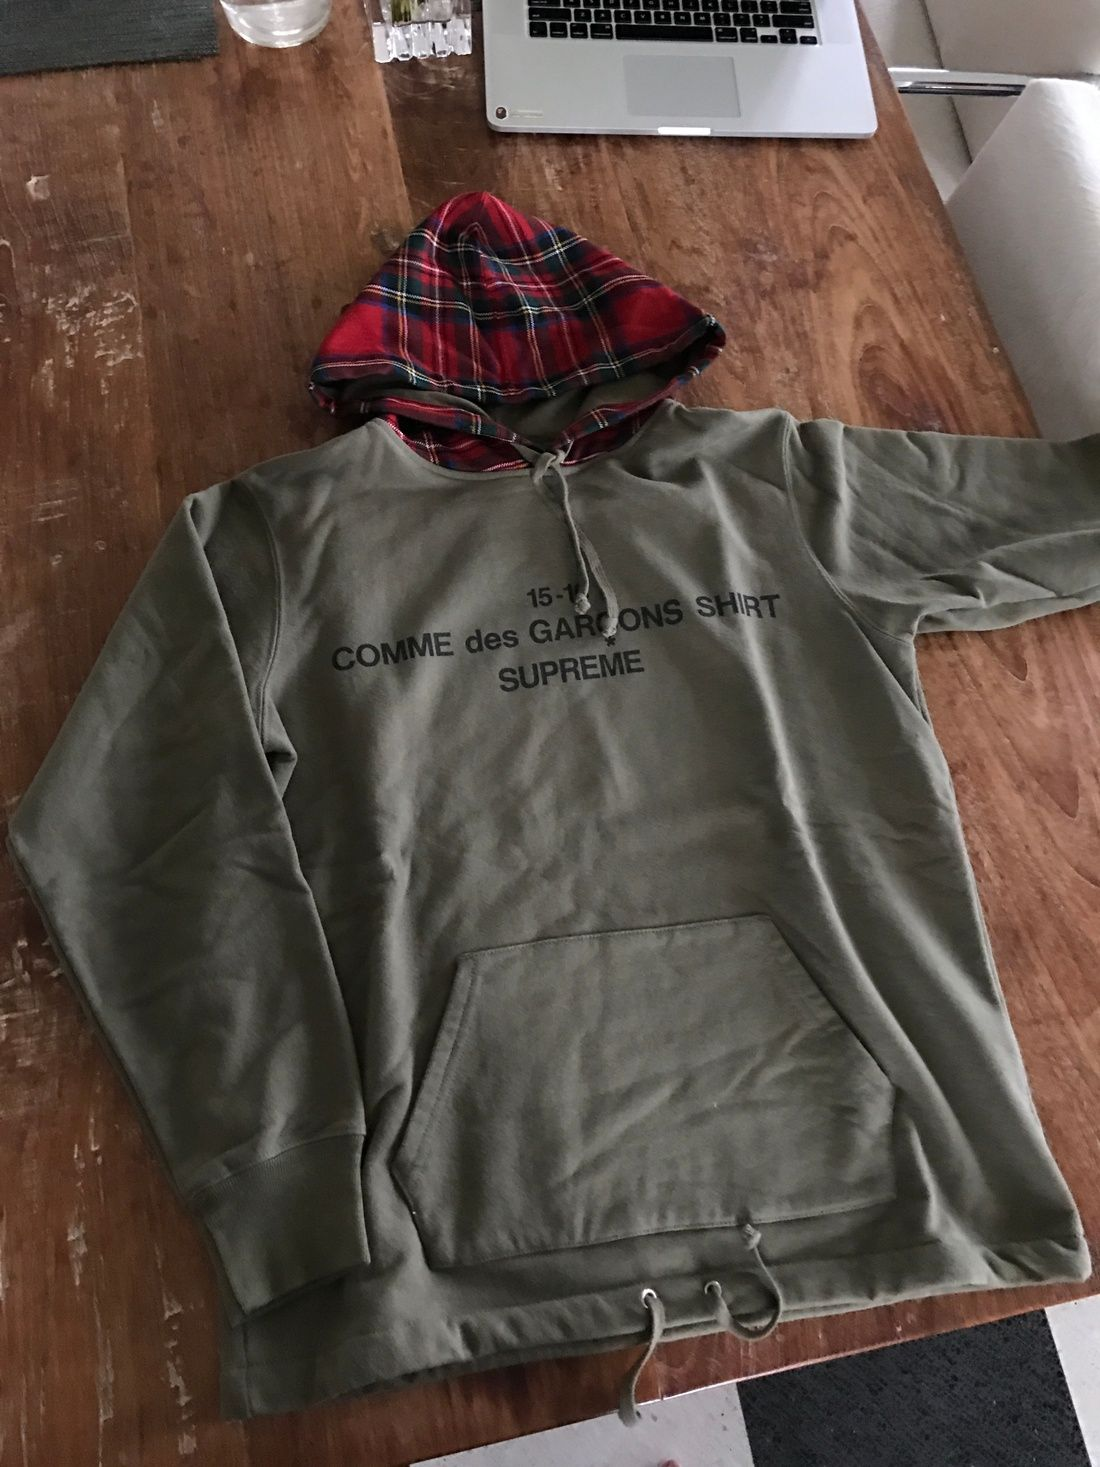 bd5742dbc9b4 Comme Des Garcons × Supreme Olive Cdg Shirt Hoodie Size S  630 - Grailed